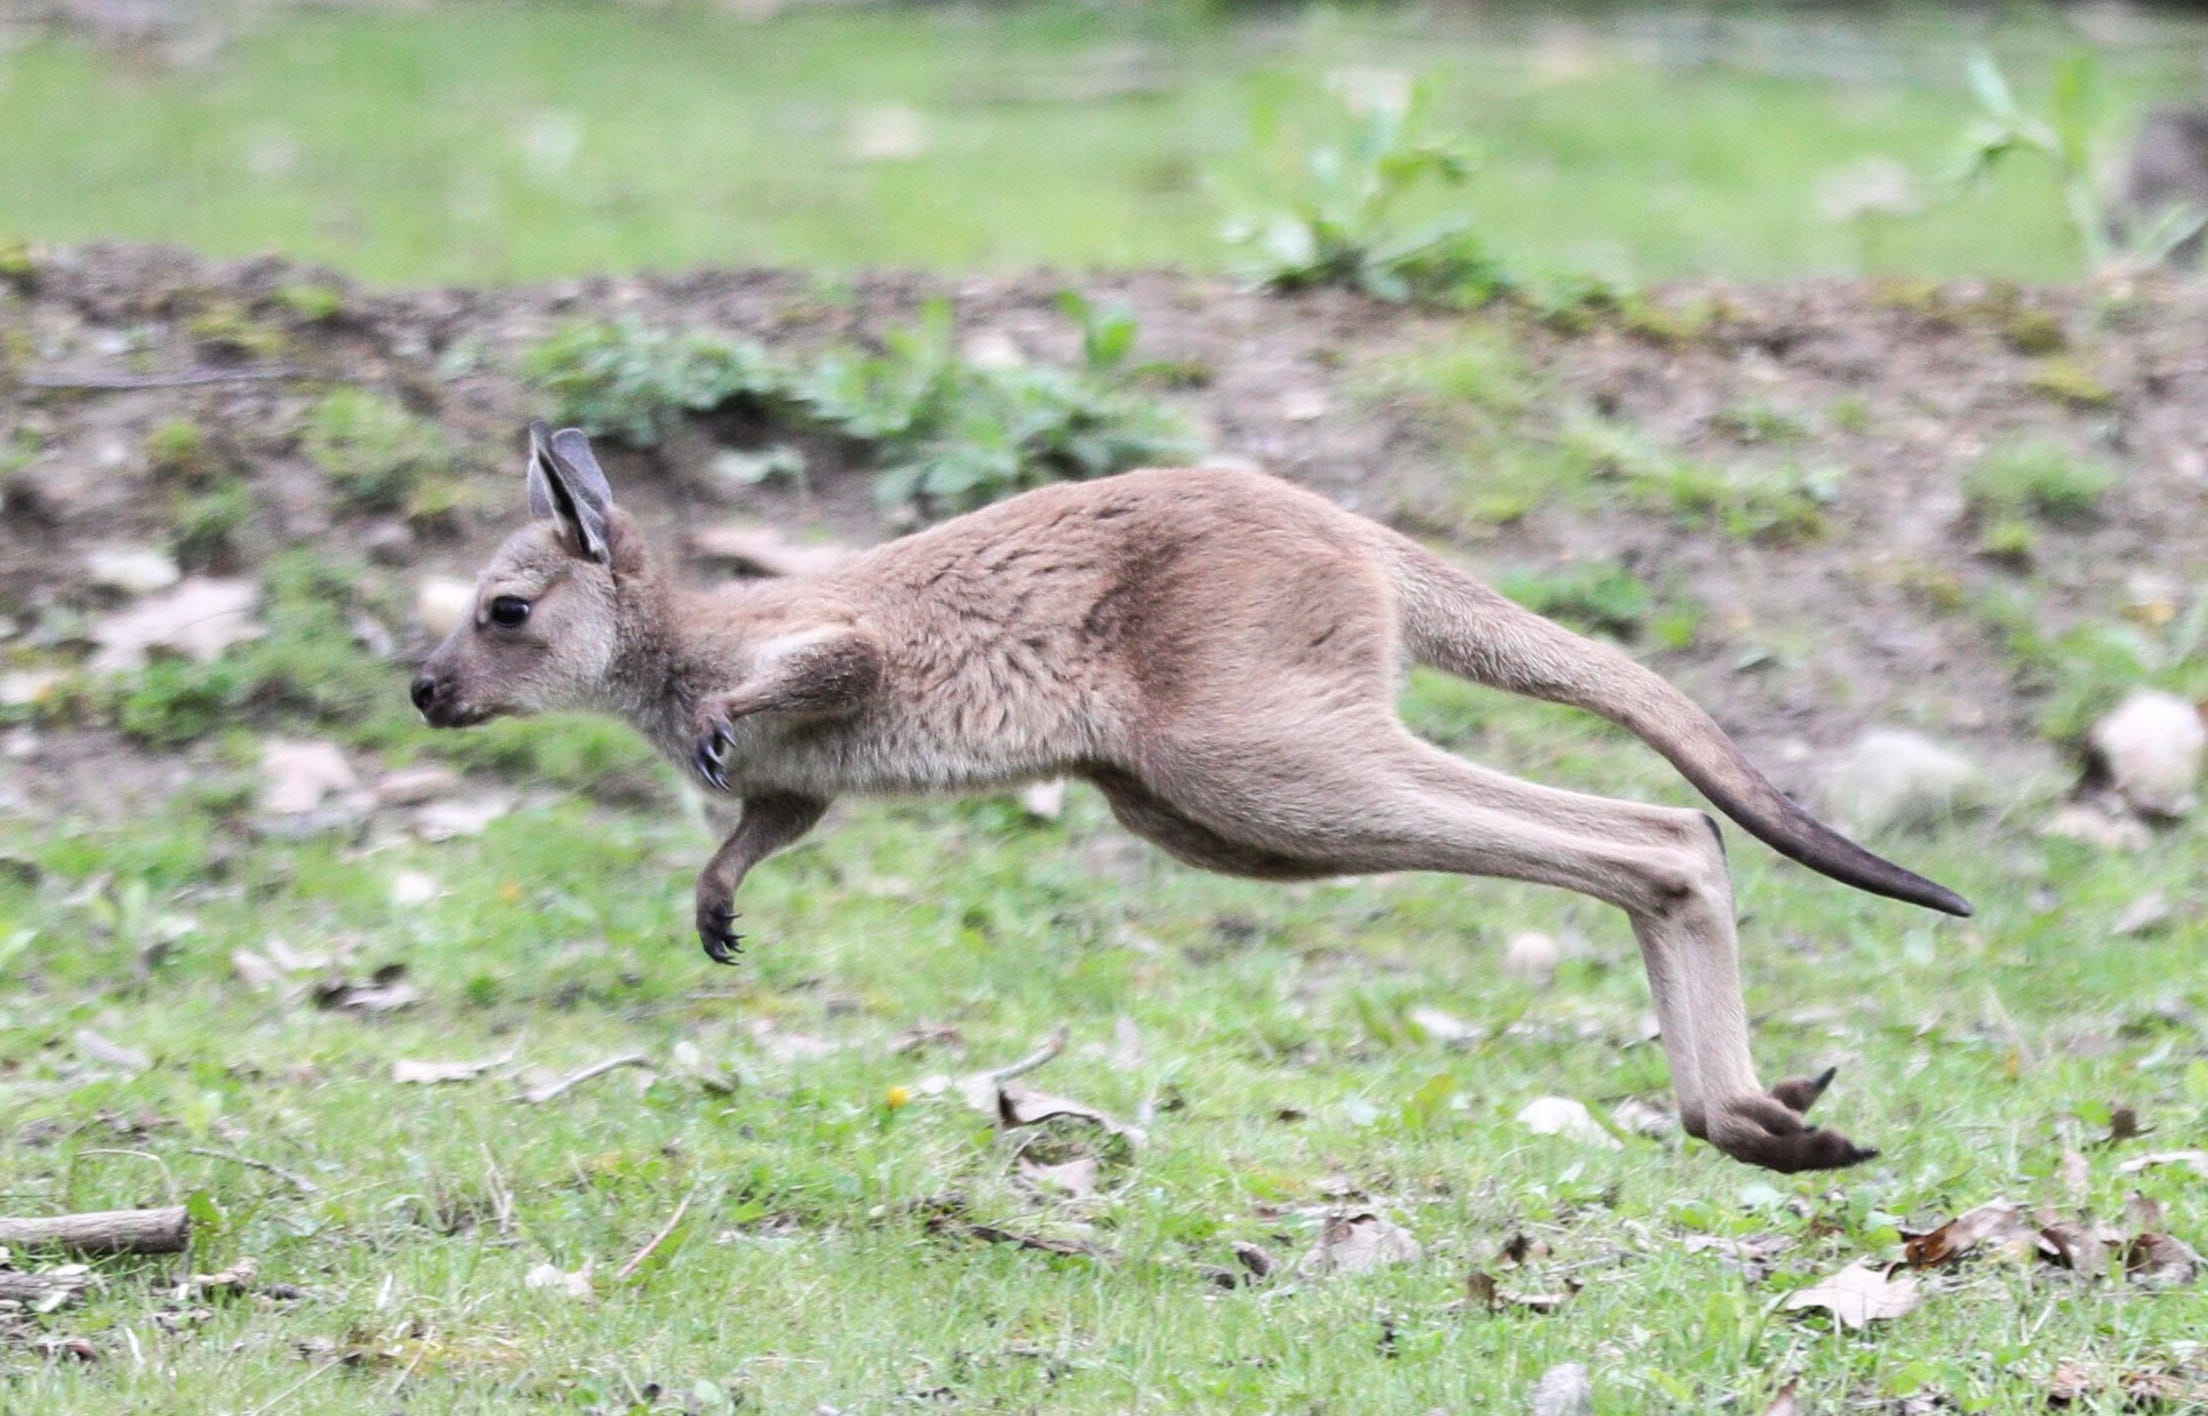 Potter Park Zoo's baby western grey kangaroo started venturing from its mother's pouch over the last week.